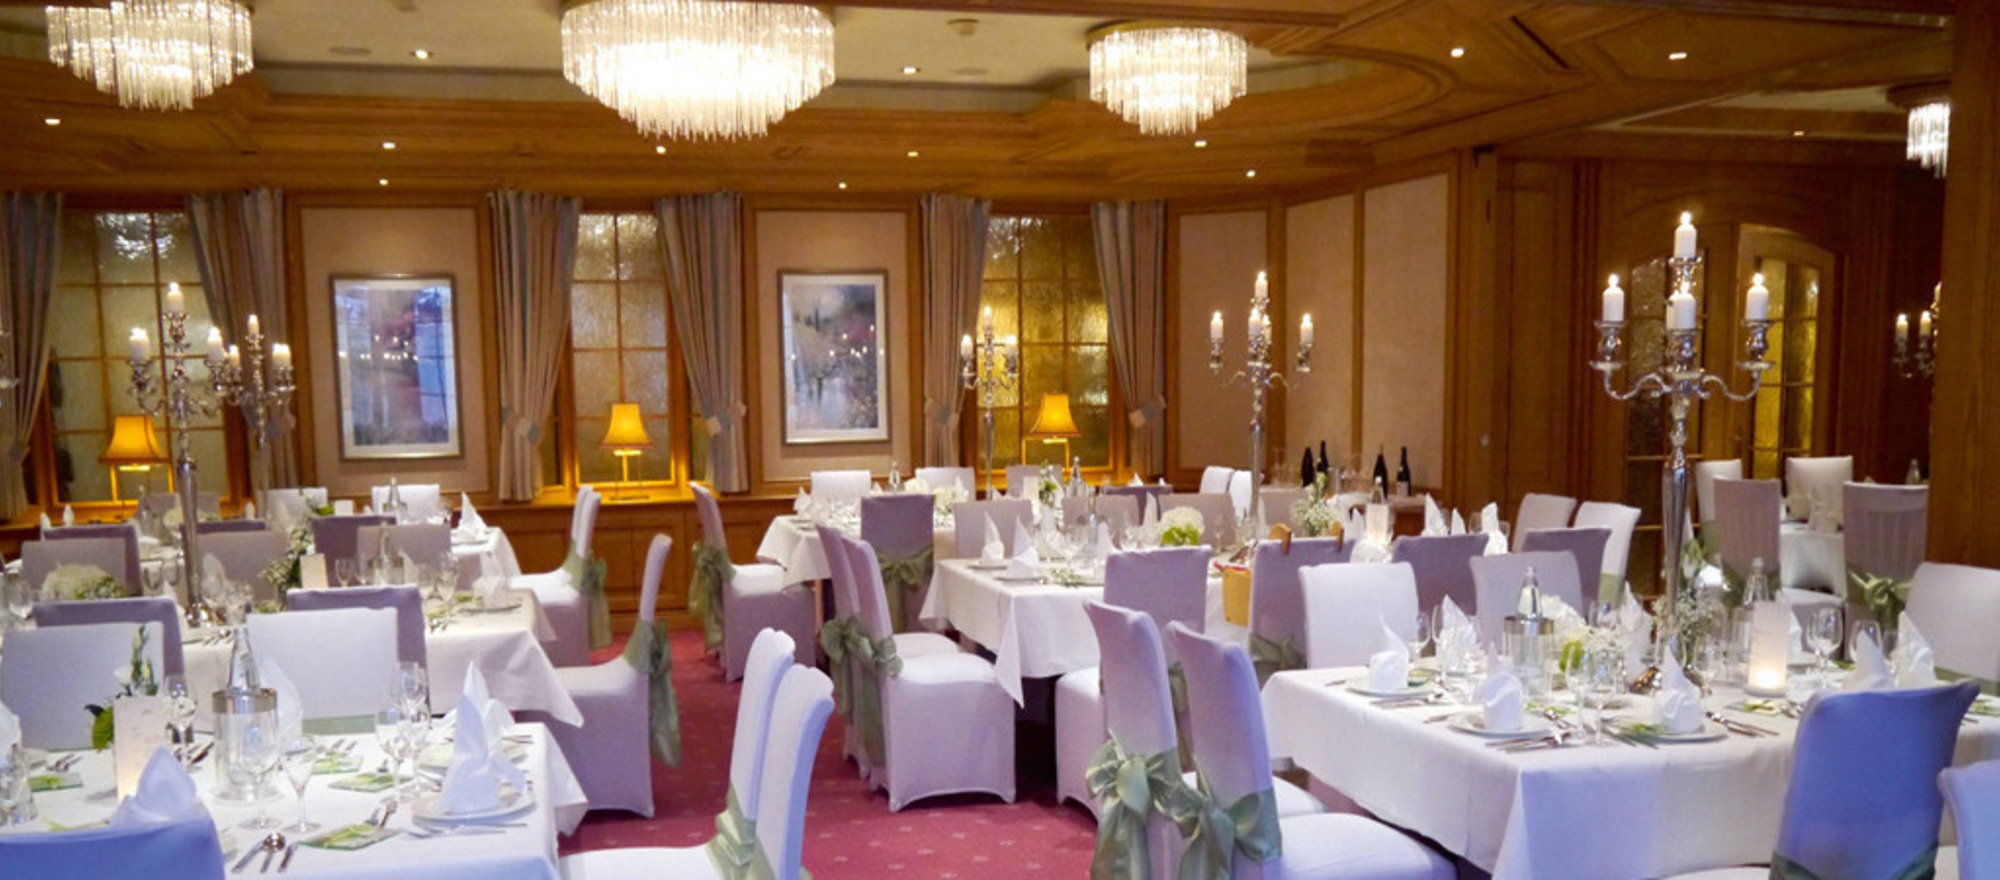 German classics, or regional delicacies in the 4-star Ringhotel Niedersachsen in Hoexter